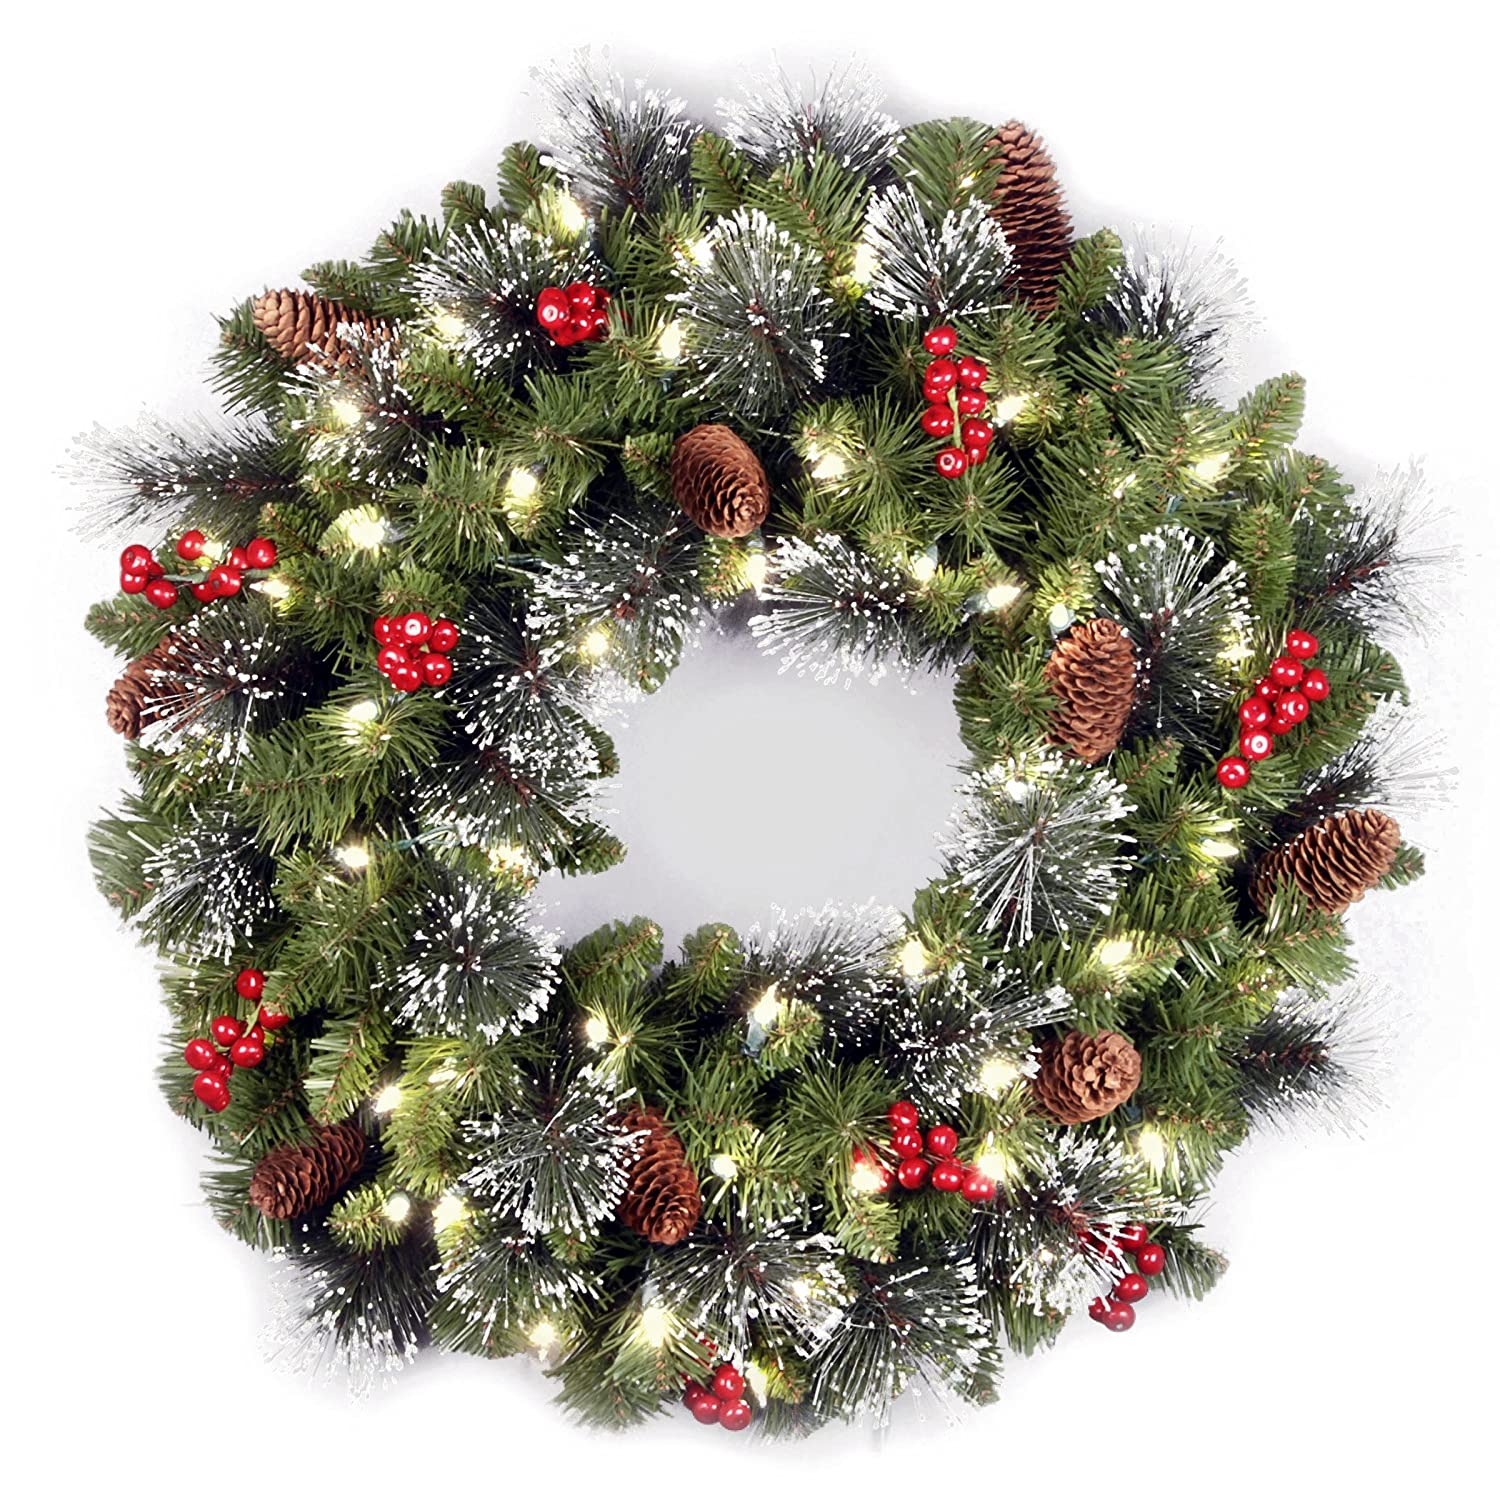 Modern wreaths for front door - National